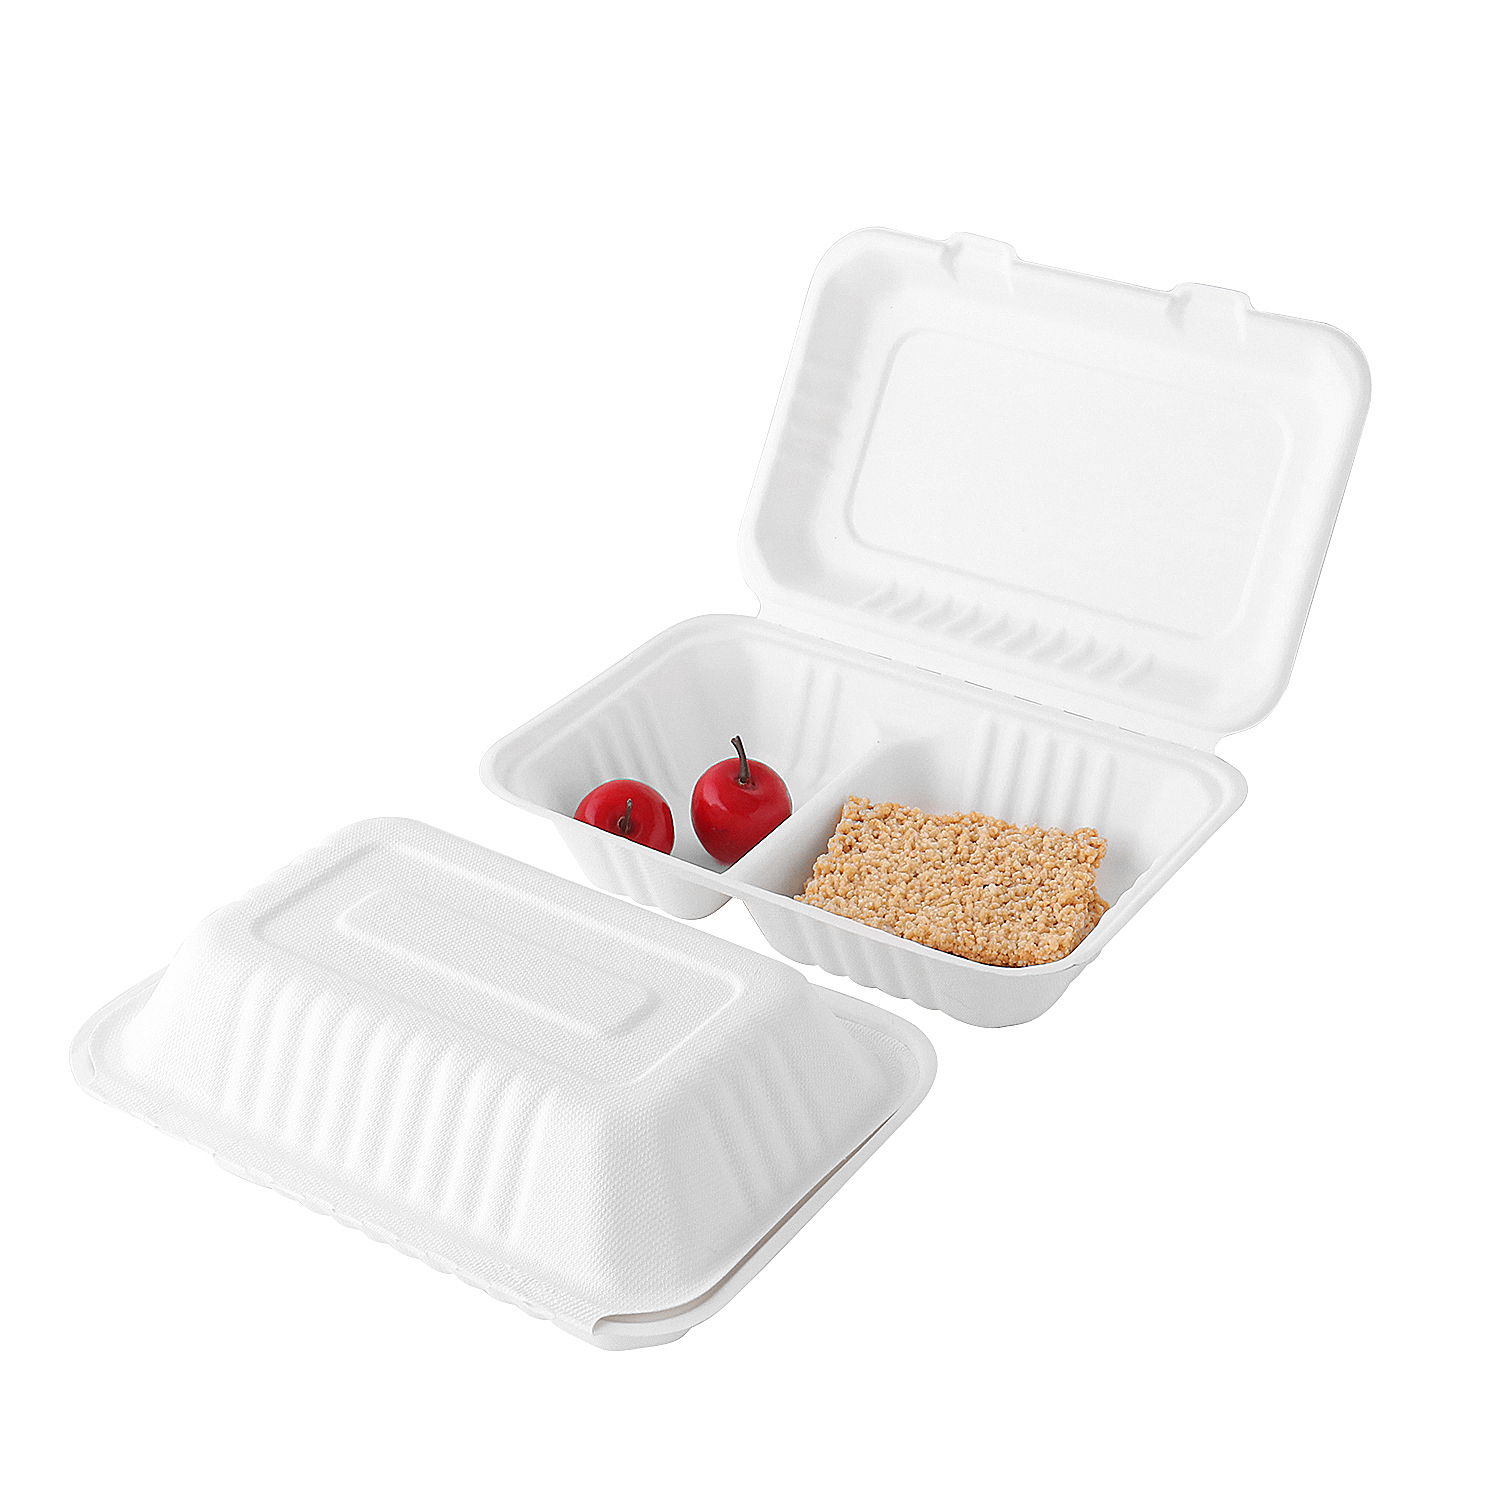 "9.8""x6.5"" X2.4"" Compostable Bagasse Rectangle 2 Compartment Clamshell Boxes"